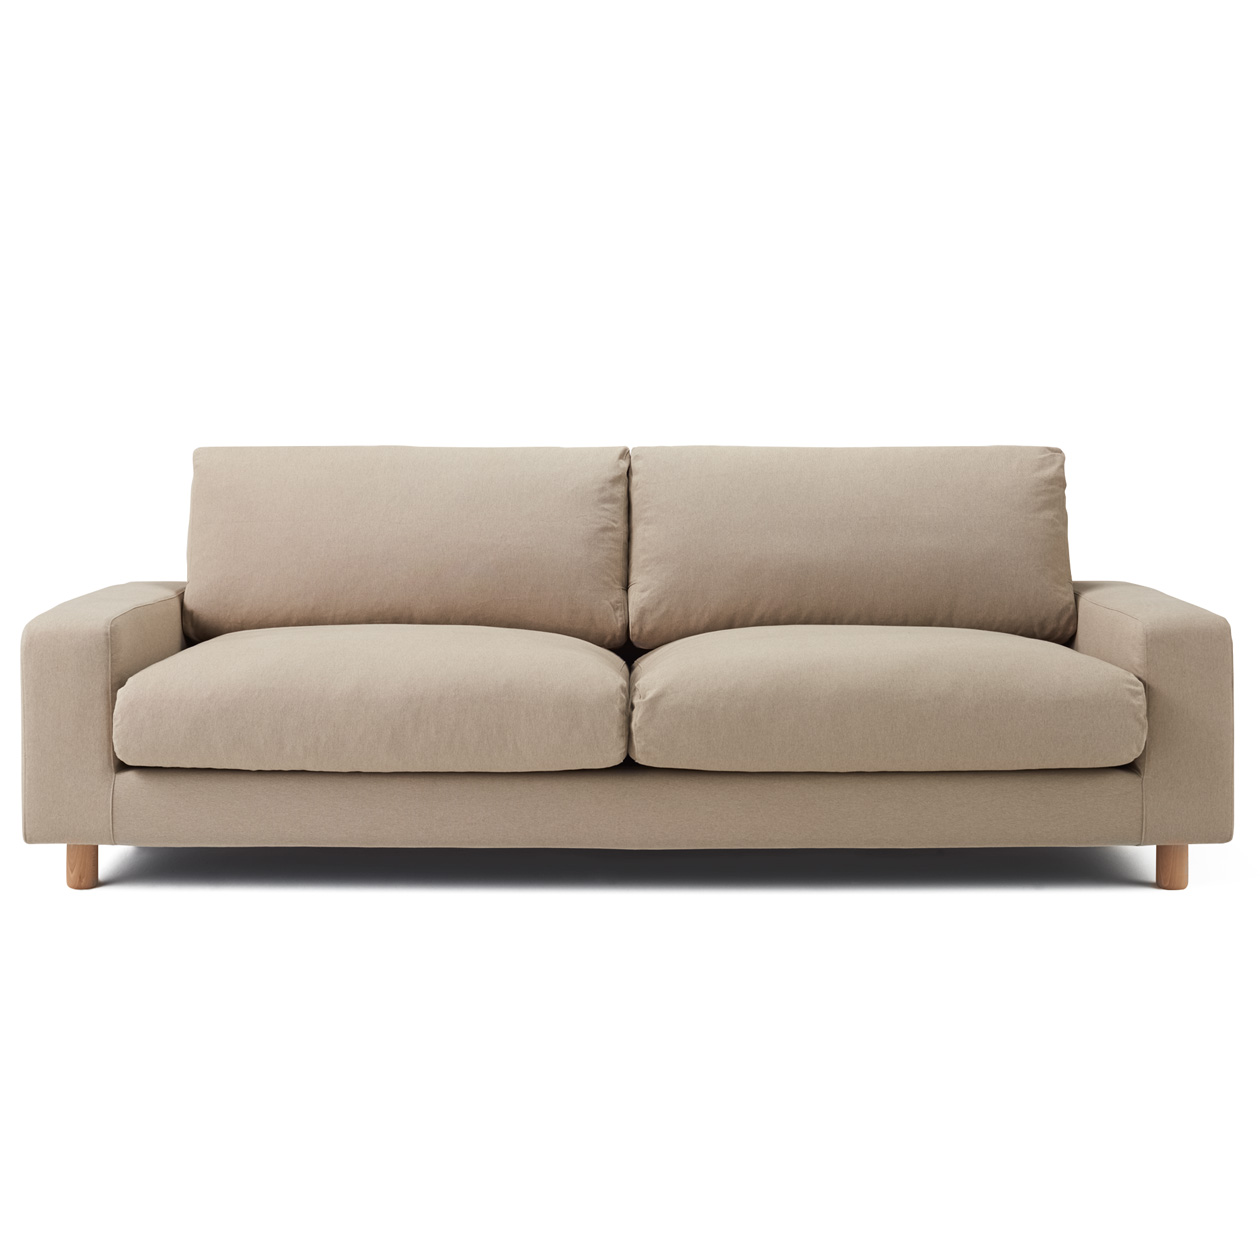 Cotton Cover For Sofa Wide Arm Down 3s Be 3seater Muji